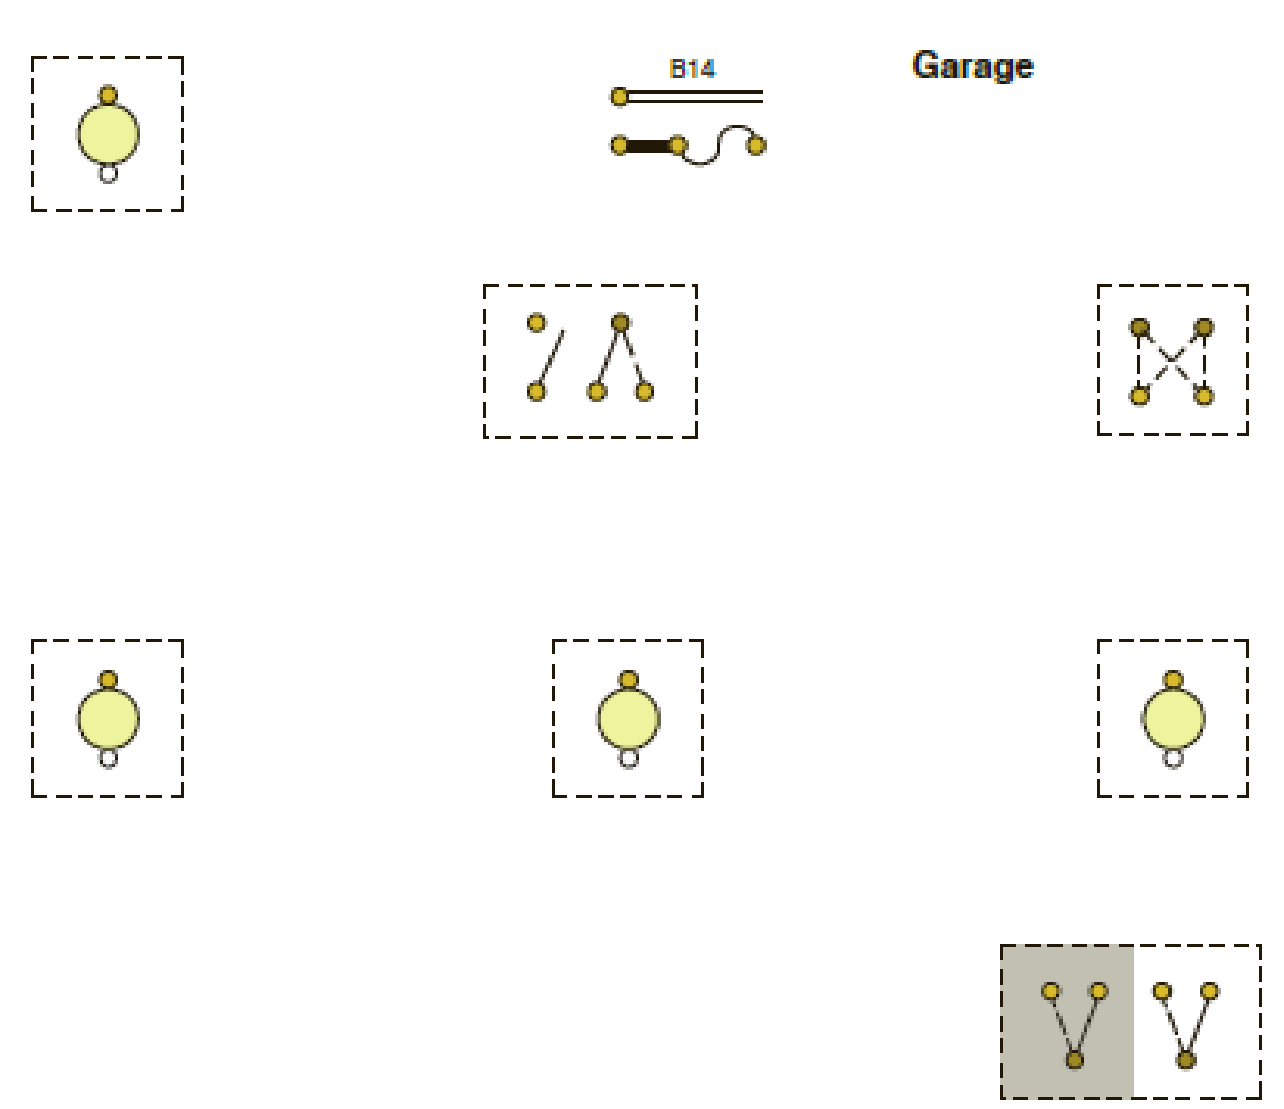 wiring diagram for lighting using the suggested cable layout of the garage lighting circuit  garage lighting circuit